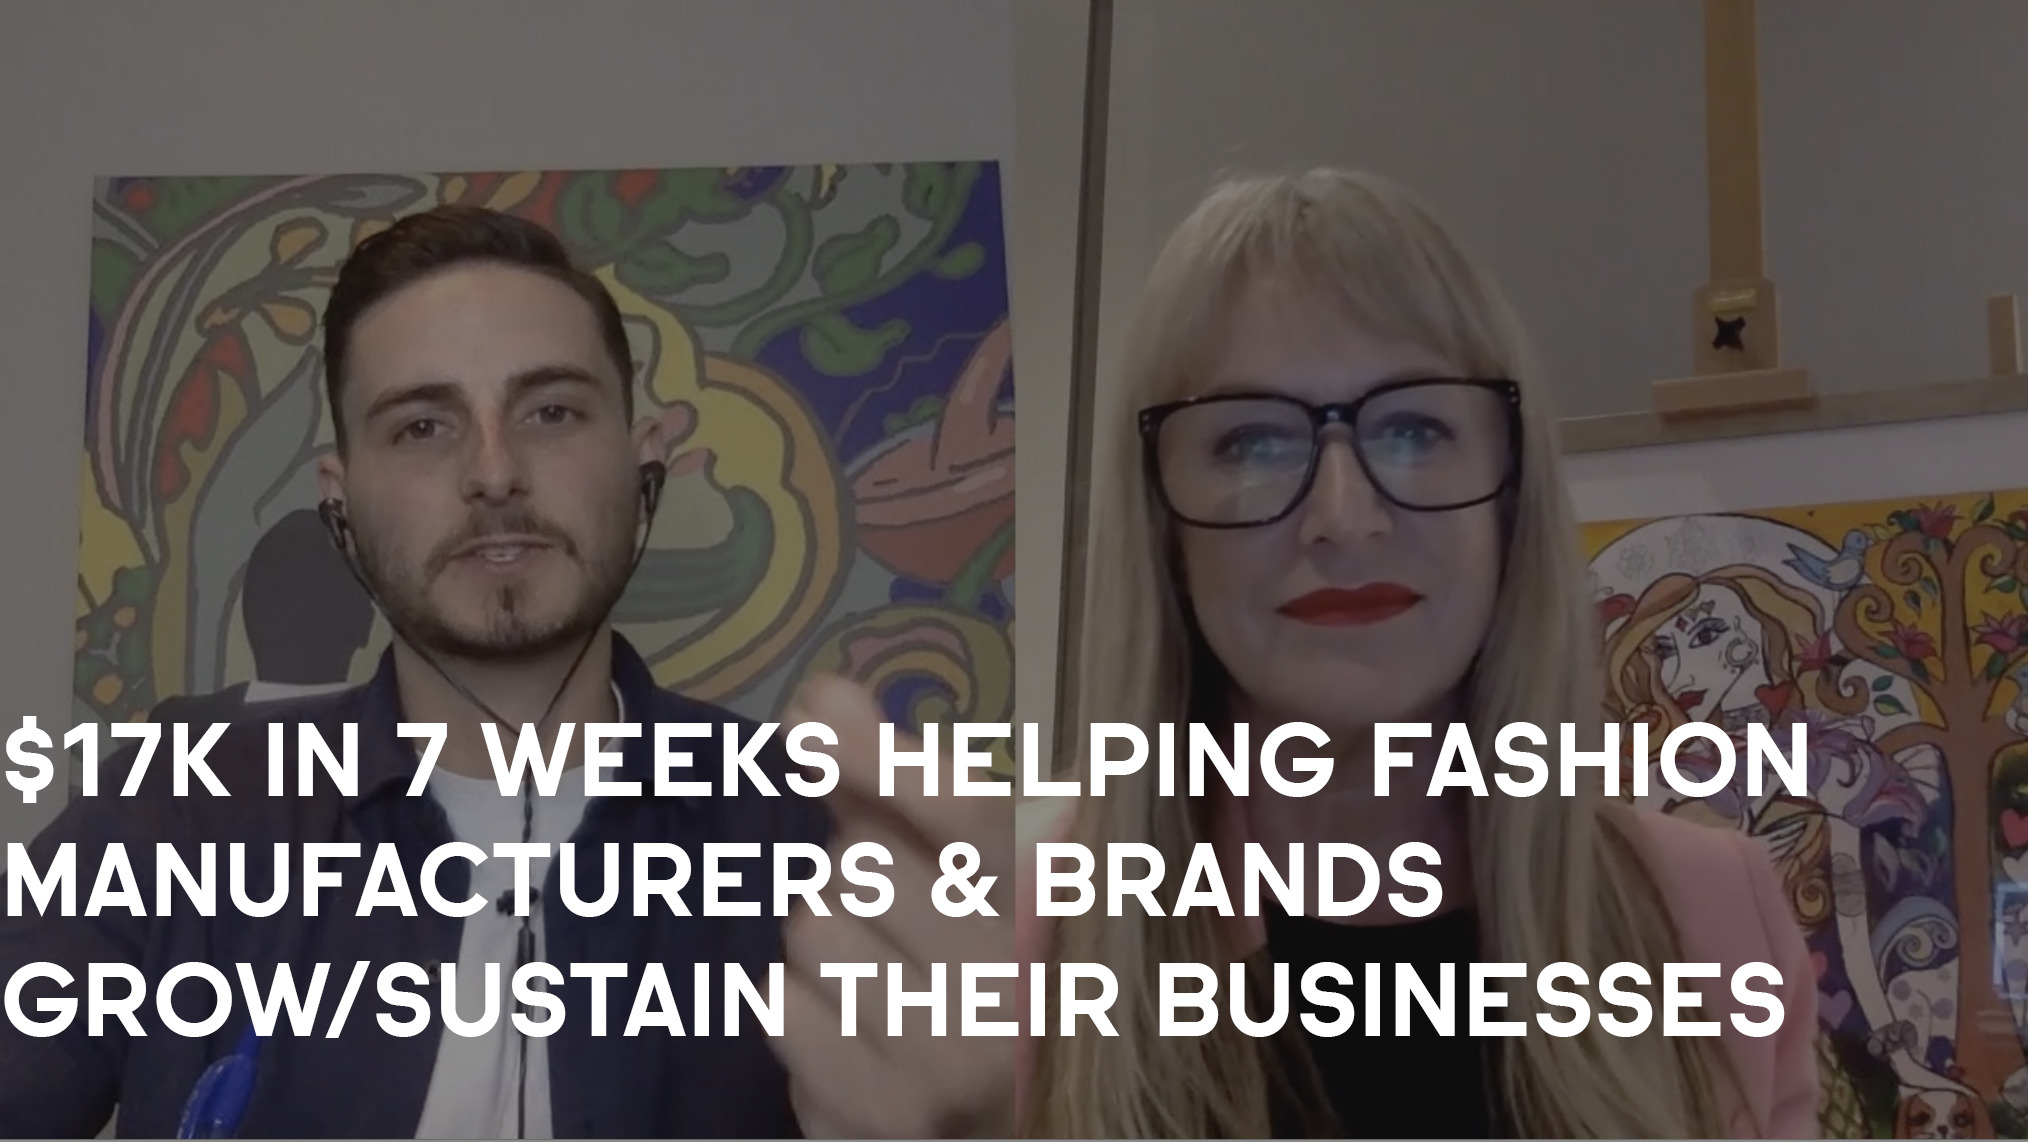 $17K In 7 Weeks Helping Fashion Manufacturers & Brands Grow/Sustain Their Businesses